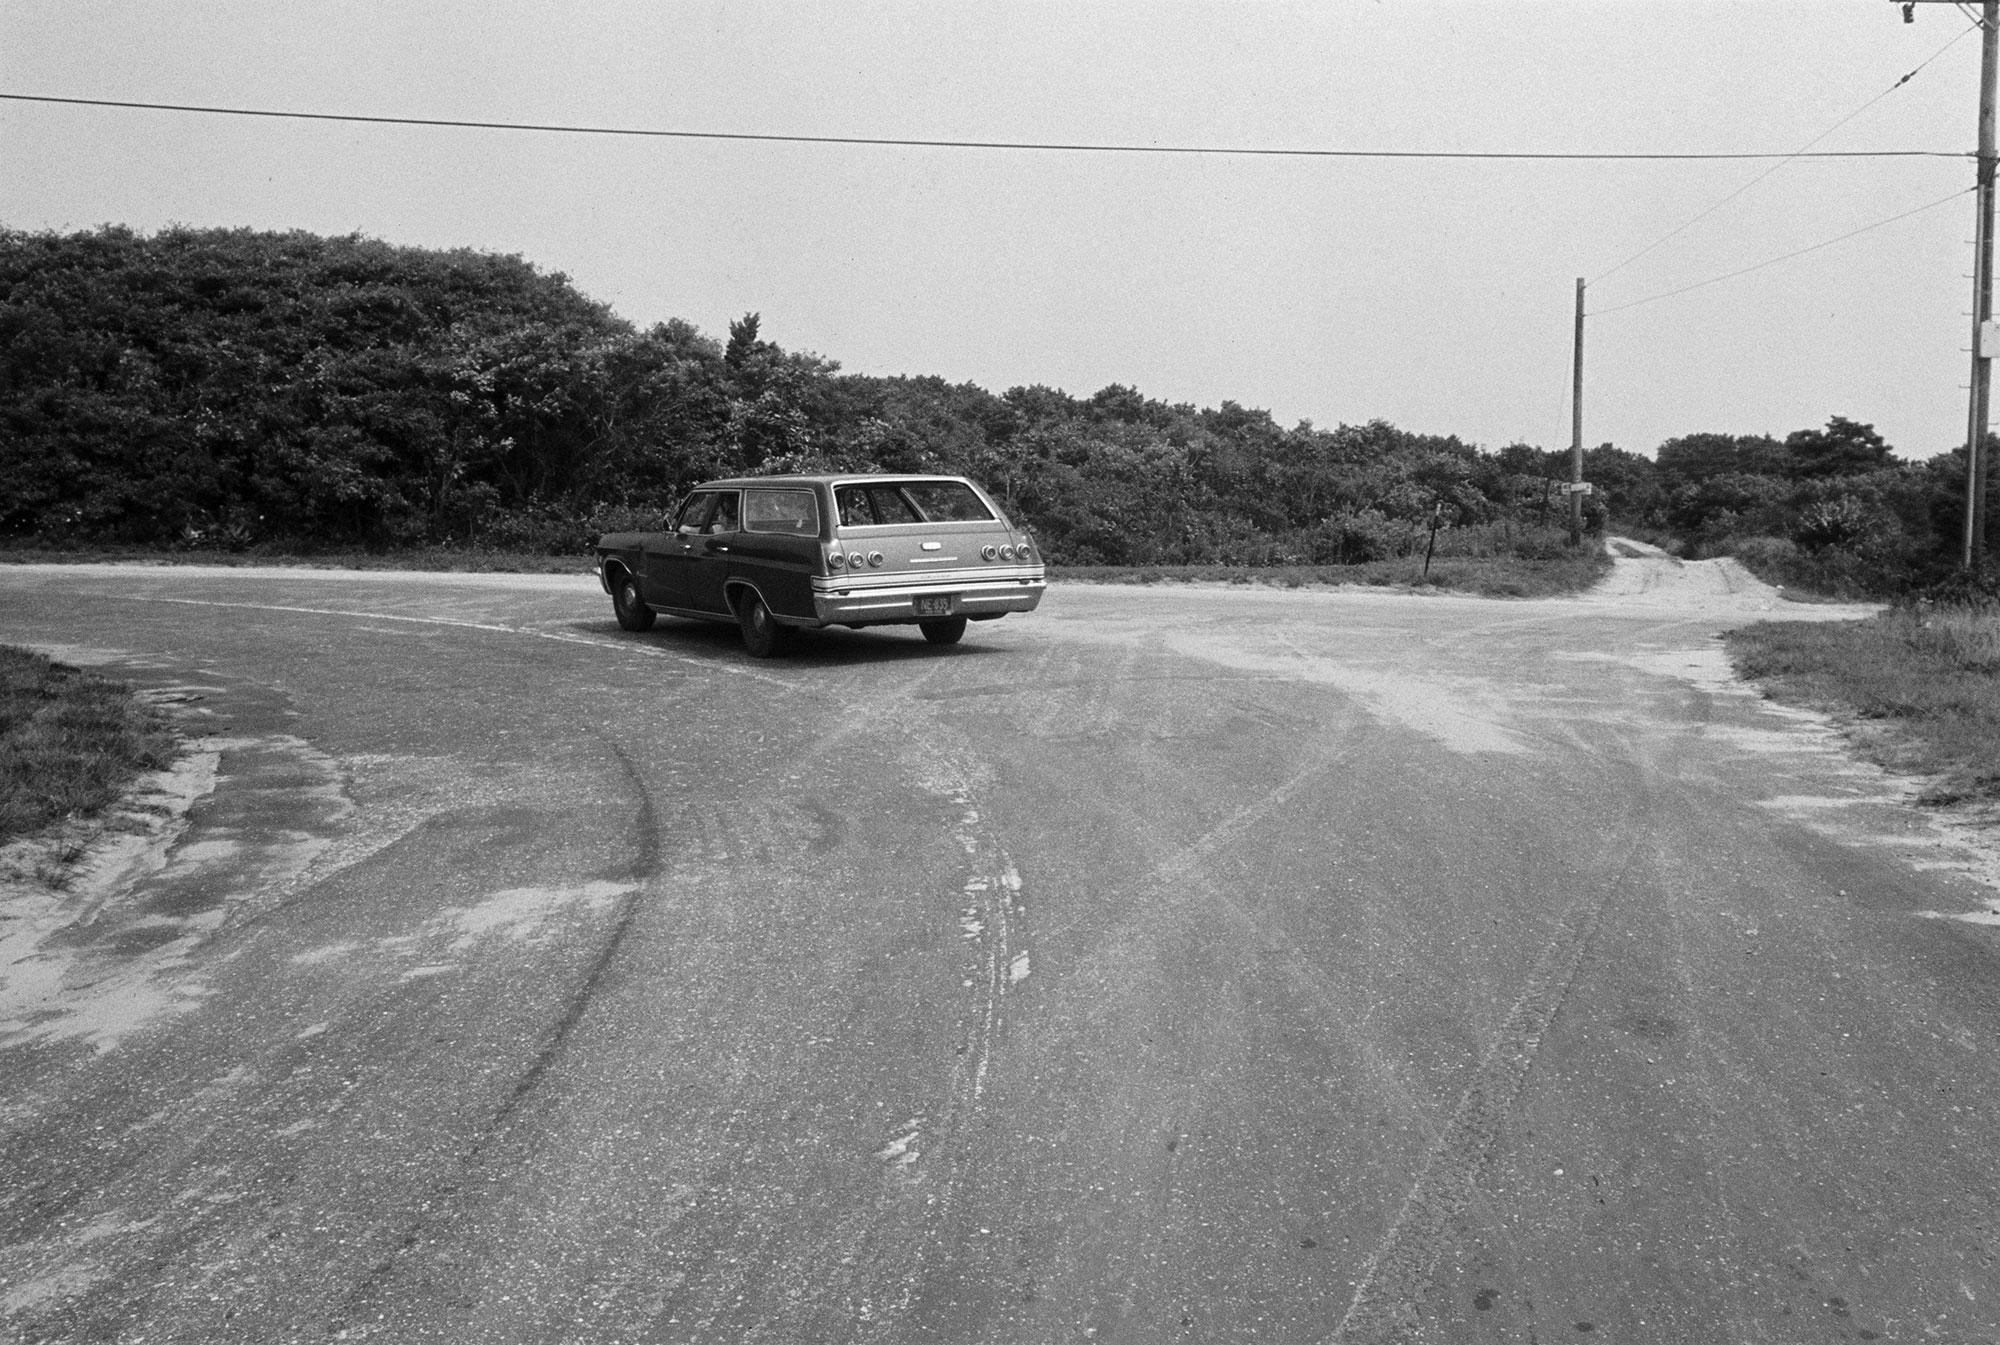 A car follows the curve of Chappaquiddick Road to the left on Chappaquiddick Island near Edgartown, Mass., on Aug. 9, 1969. Cemetery Road is straight ahead. On the night of his car accident with Mary Jo Kopechne, Ted Kennedy turned right onto Dike Road and drove off the bridge farther down. (Photo: Bettmann/Getty Images)